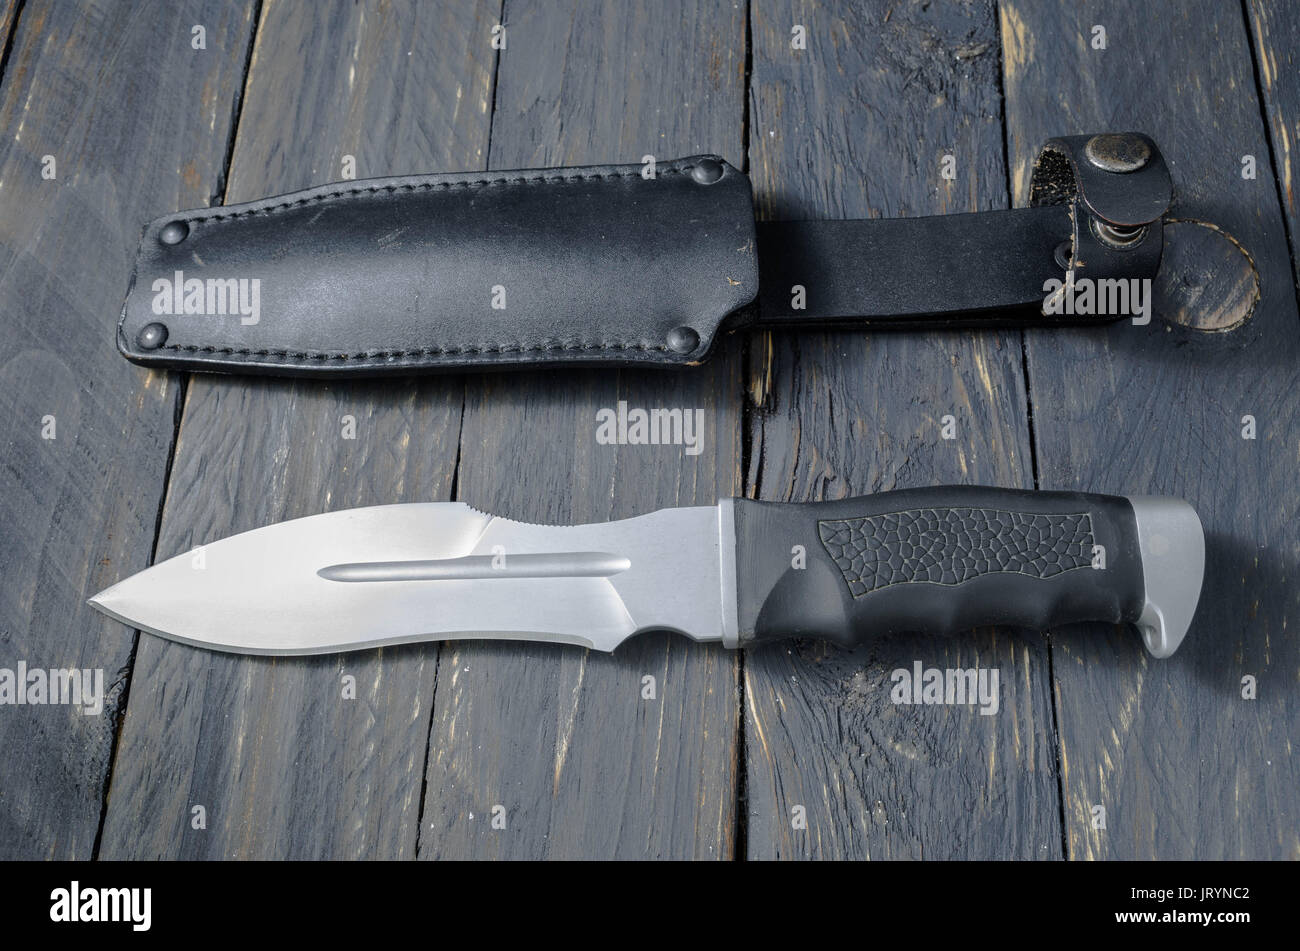 Large danger knife with a leather case. Military knife. - Stock Image